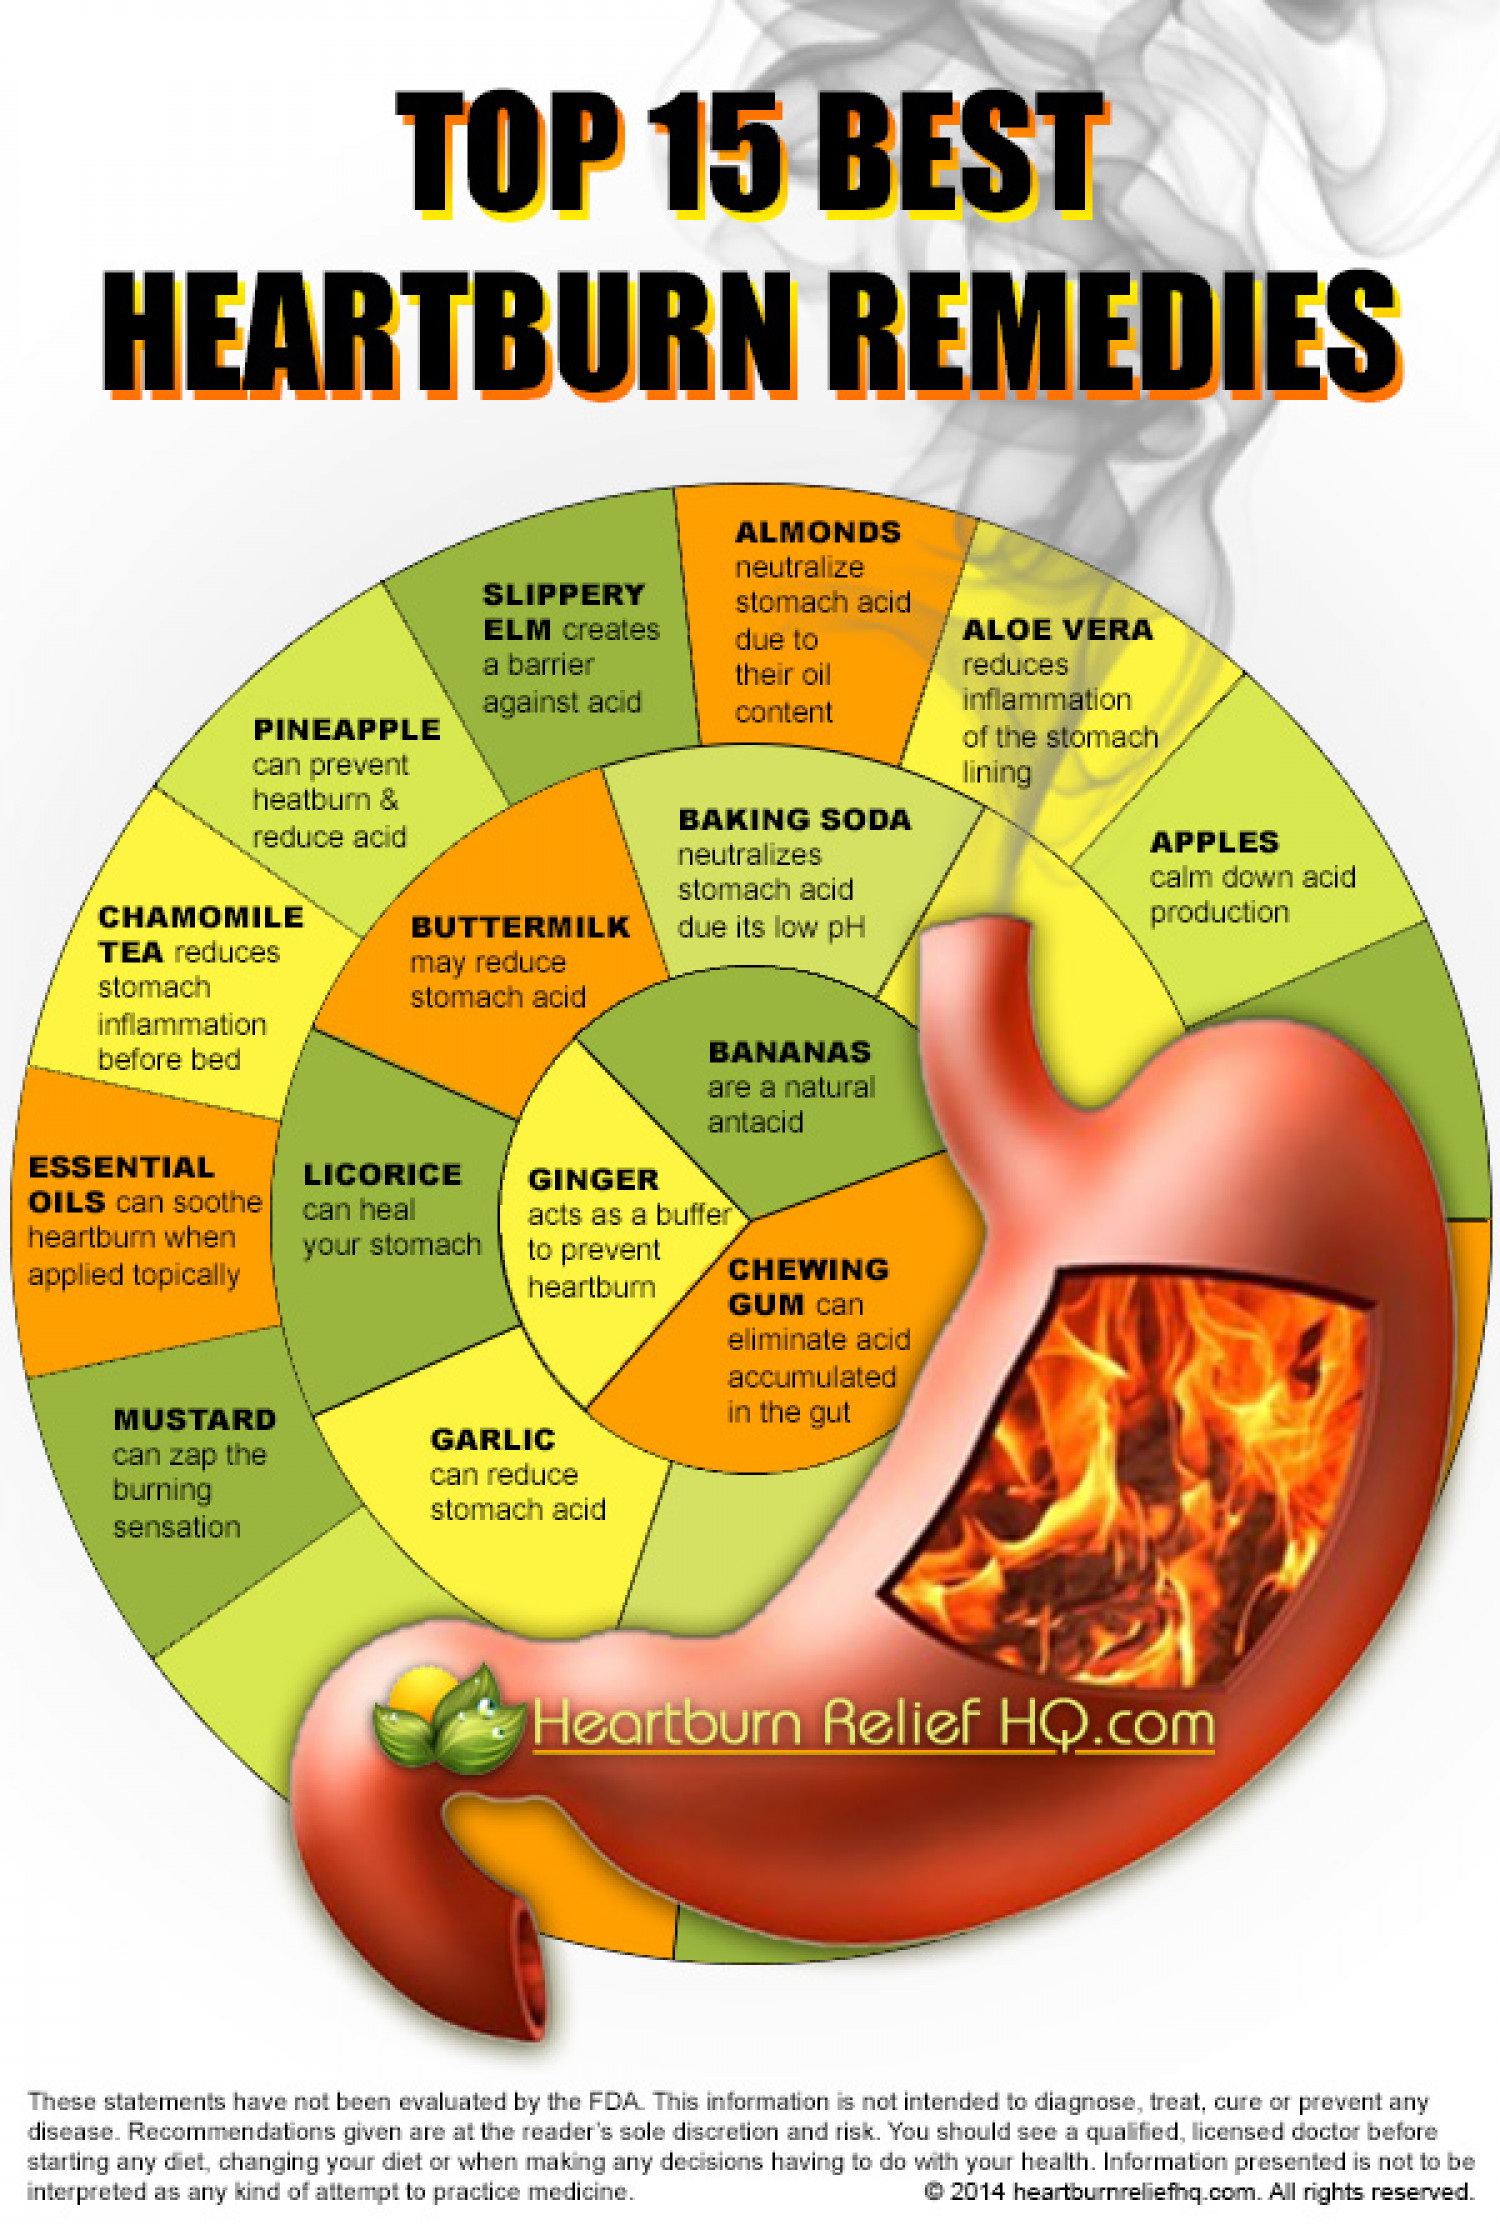 top 15 best heartburn remedies infographic | visual.ly